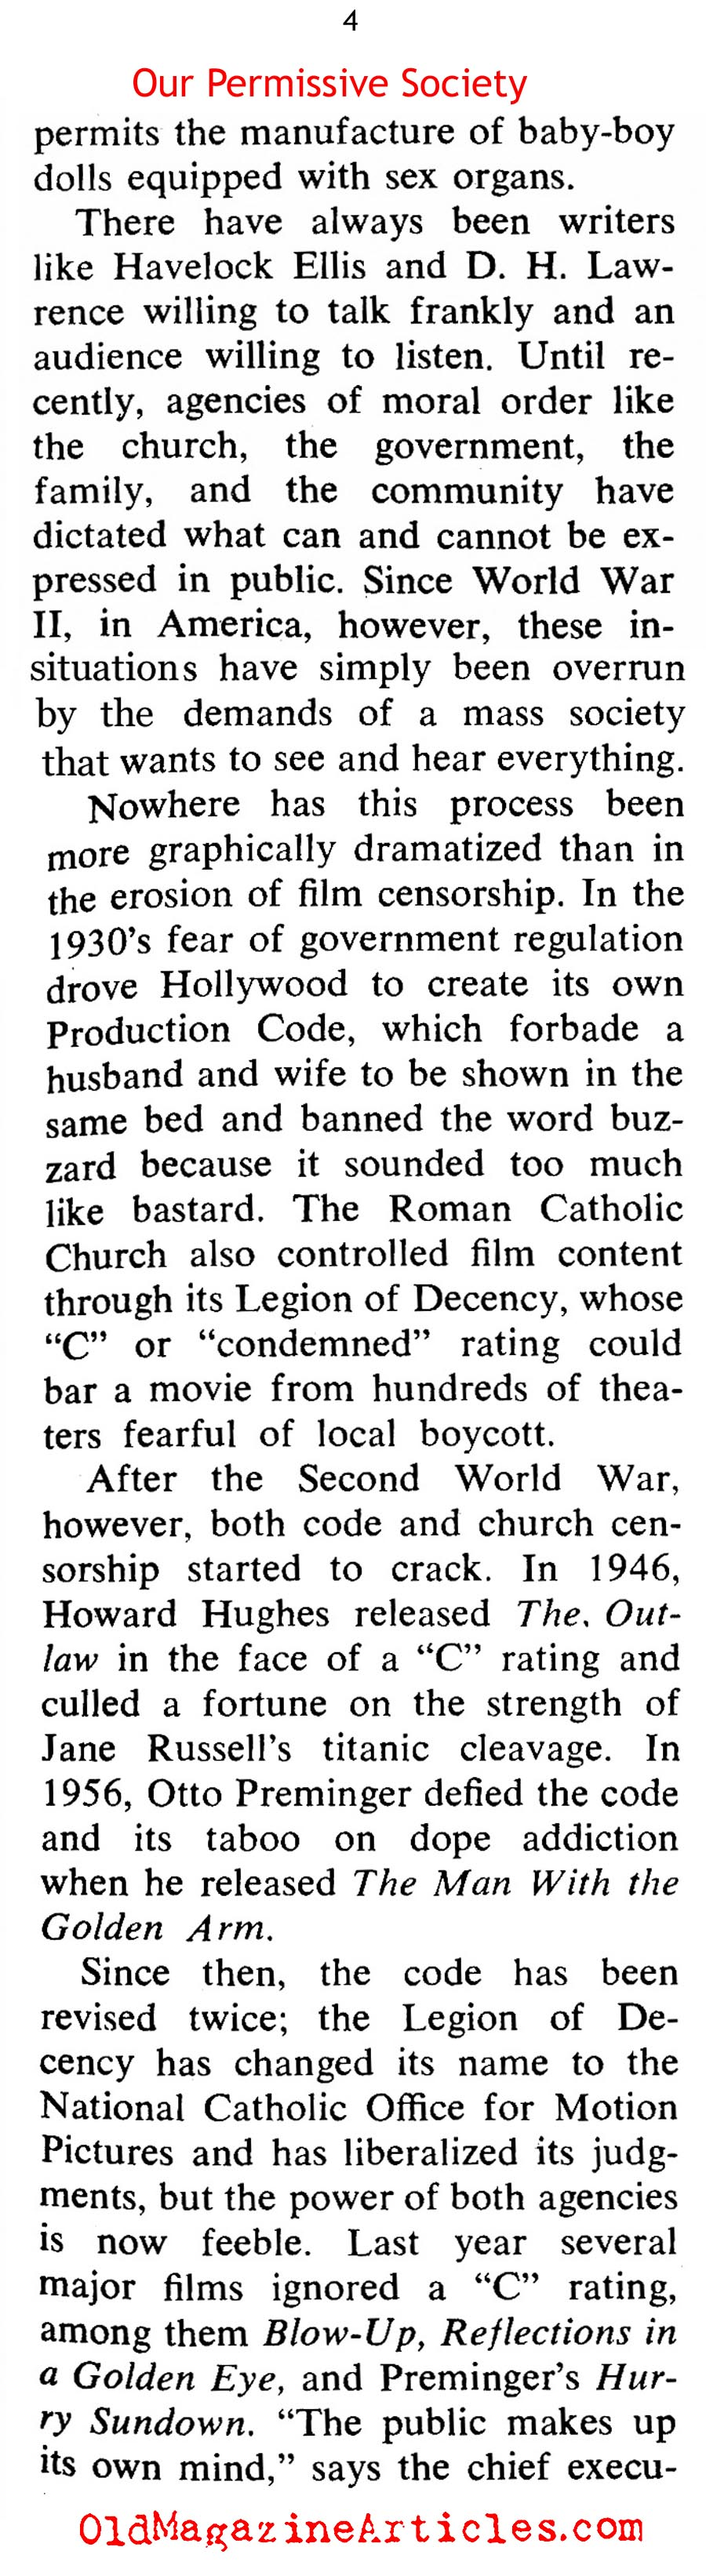 Nudity And Smut Becomes the Norm In American Pop-Culture (Coronet Magazine, 1968)